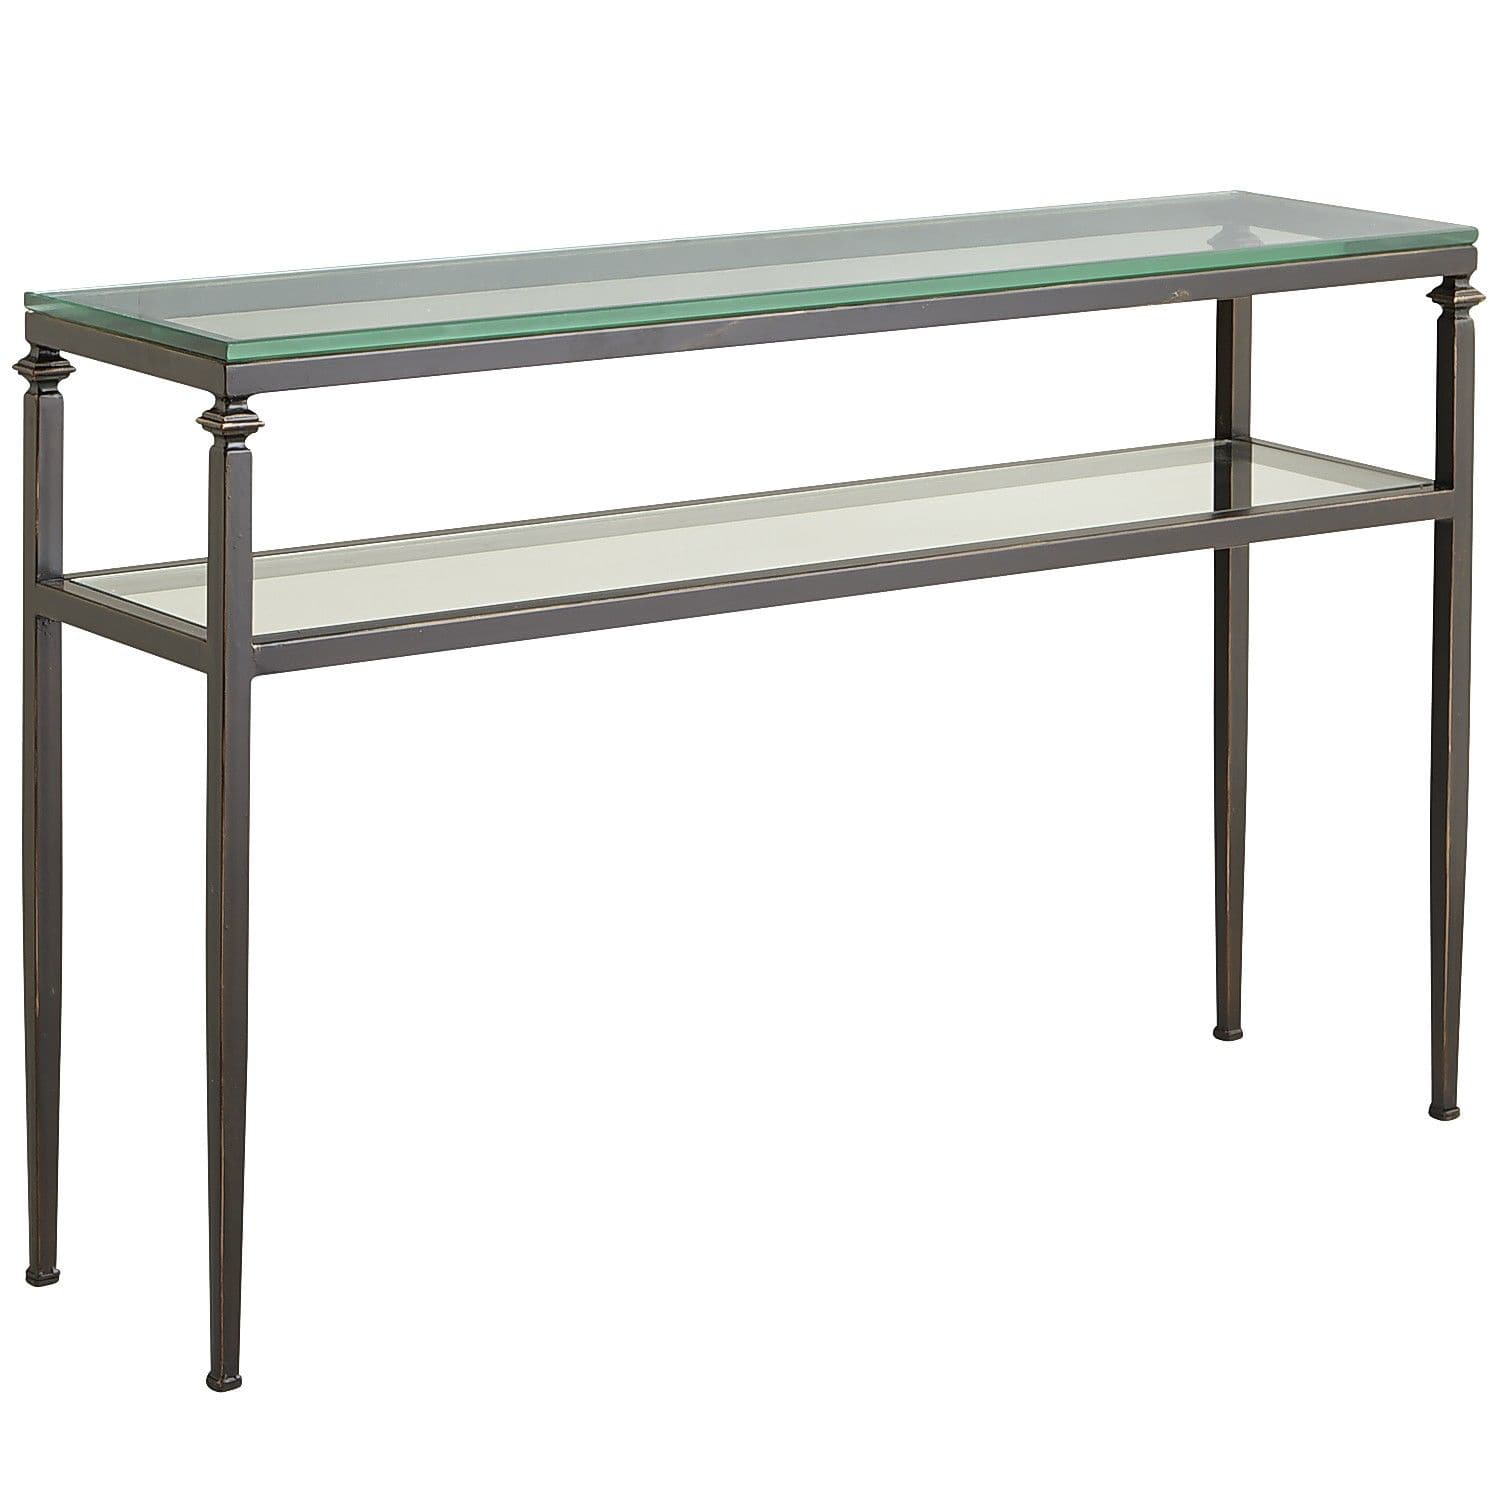 tables interesting pier one end for charming home furniture dining registry imports coffee table patio west elm side slim glass top tall skinny accent wine rack chairside bar